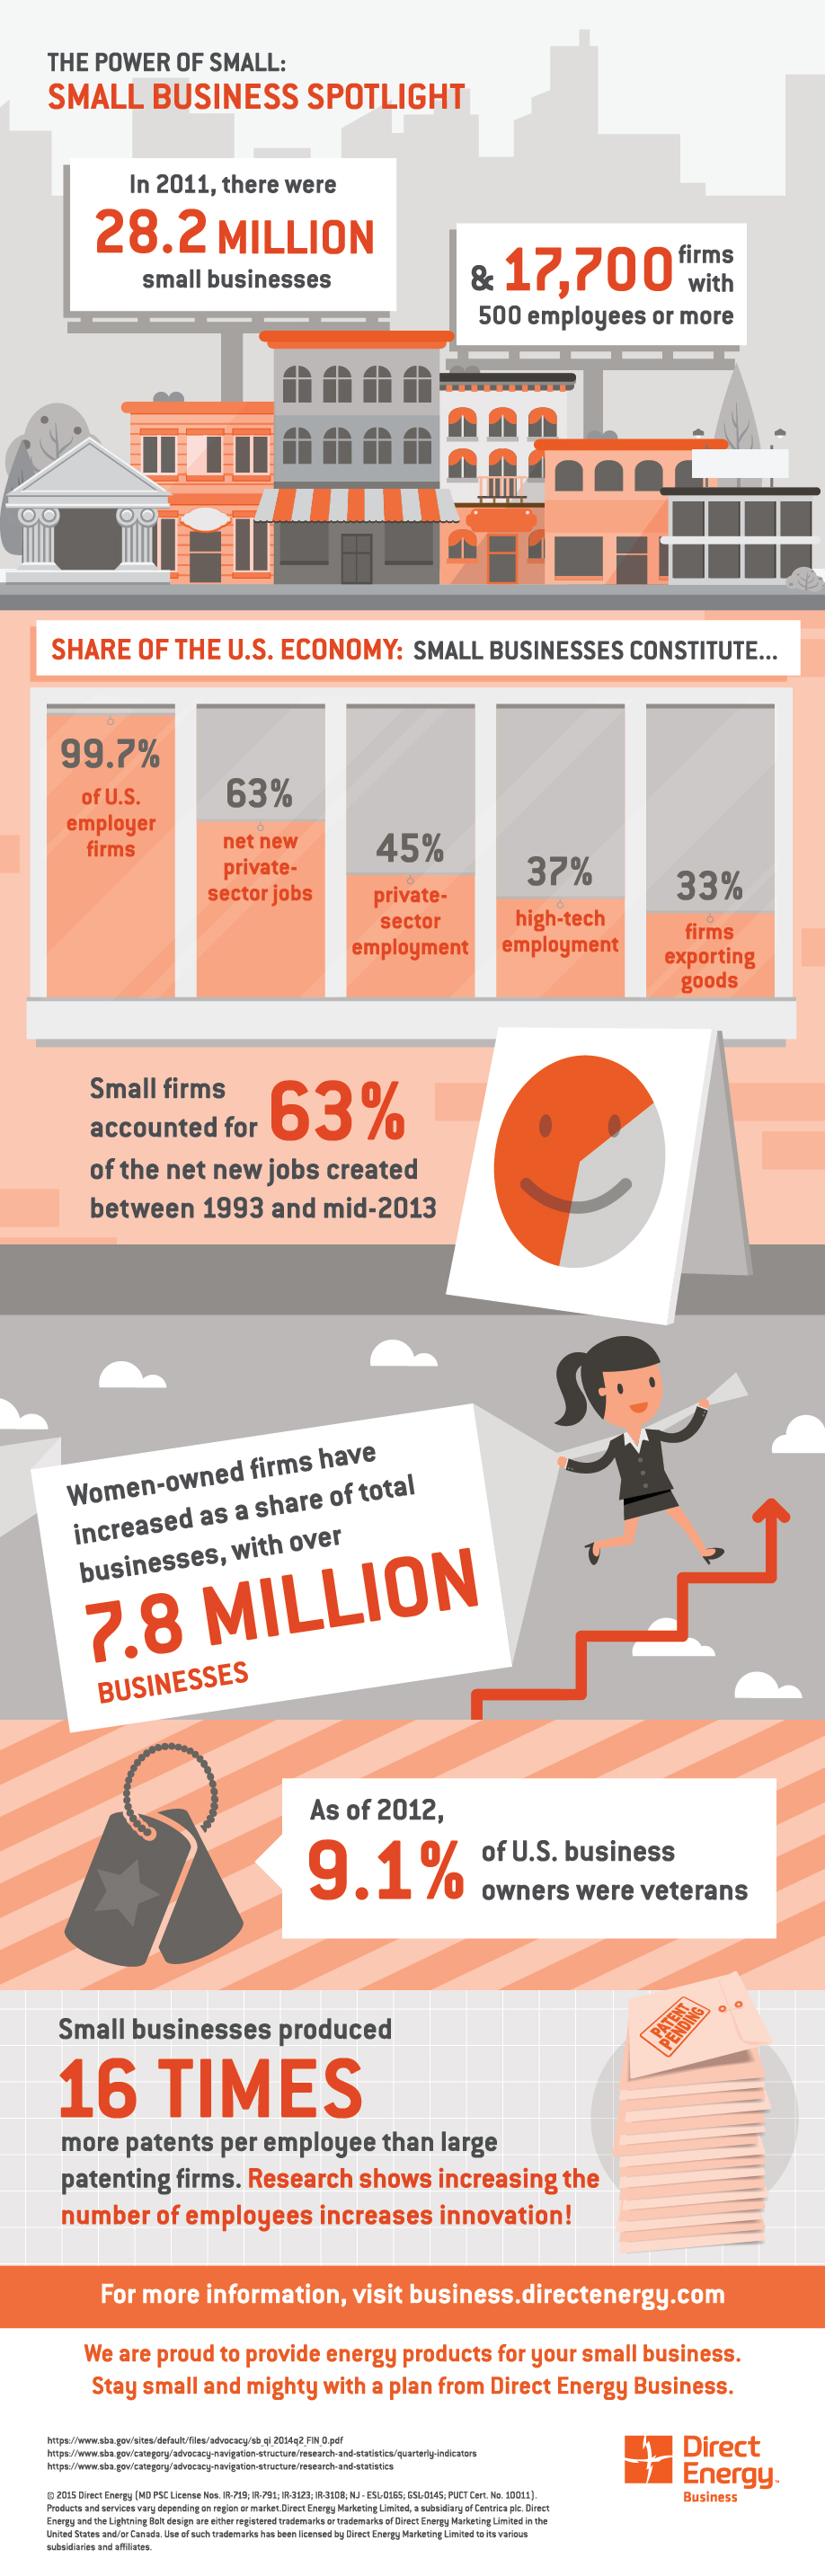 Power of Small Business infographic